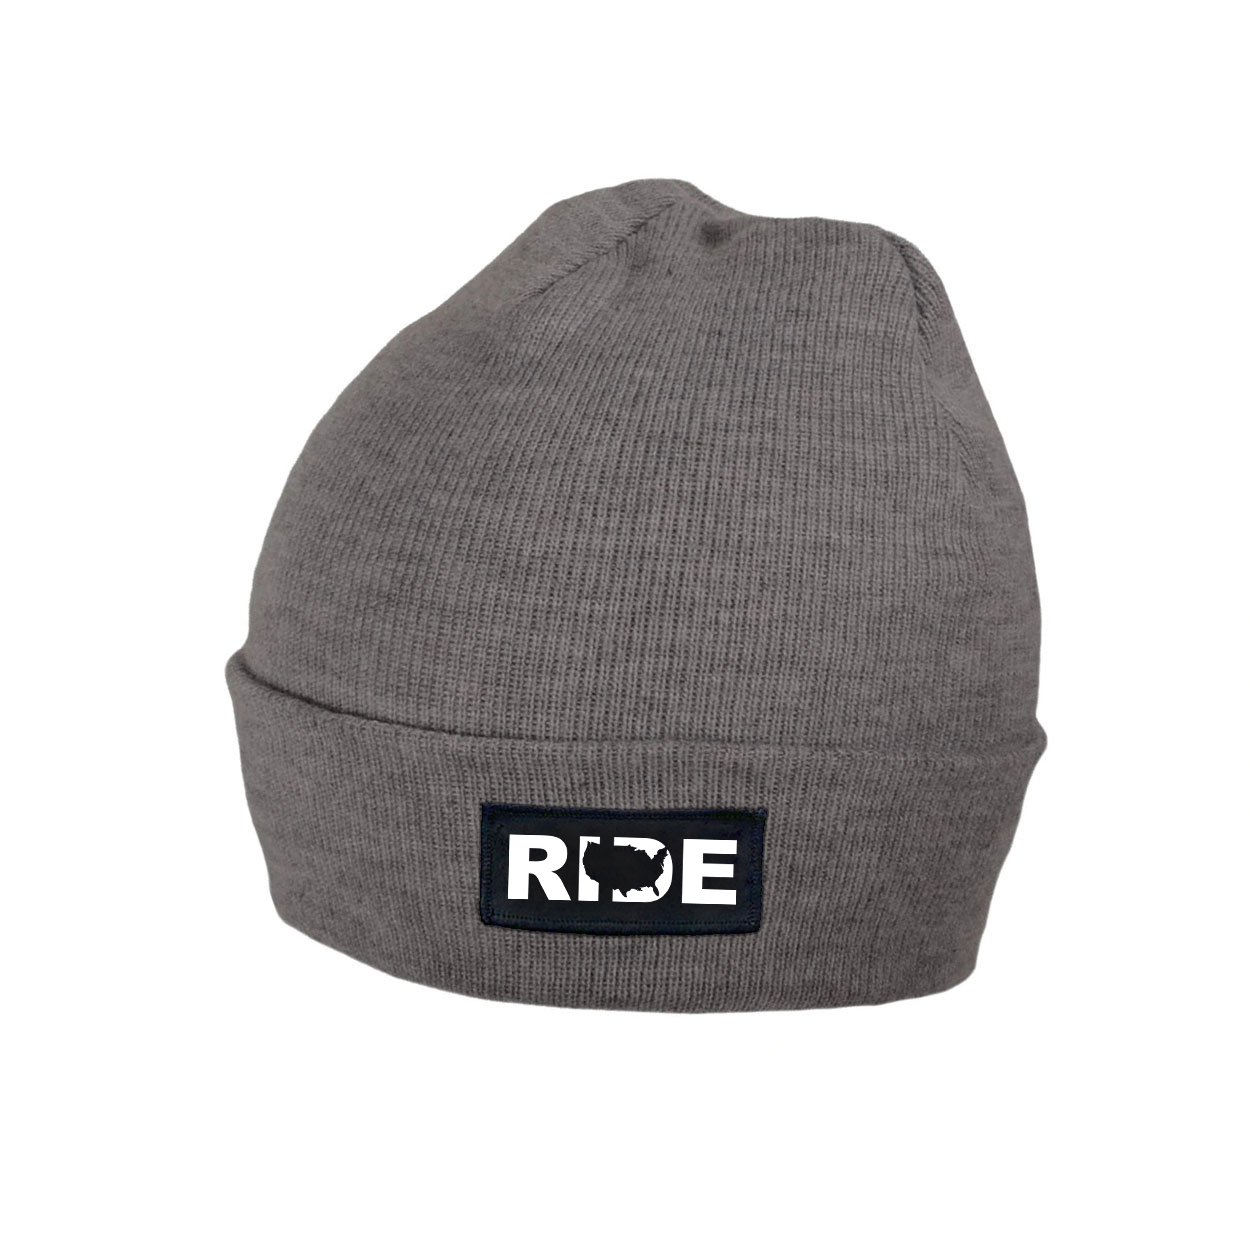 Ride United States Night Out Woven Patch Roll Up Skully Beanie Heather Gray (White Logo)